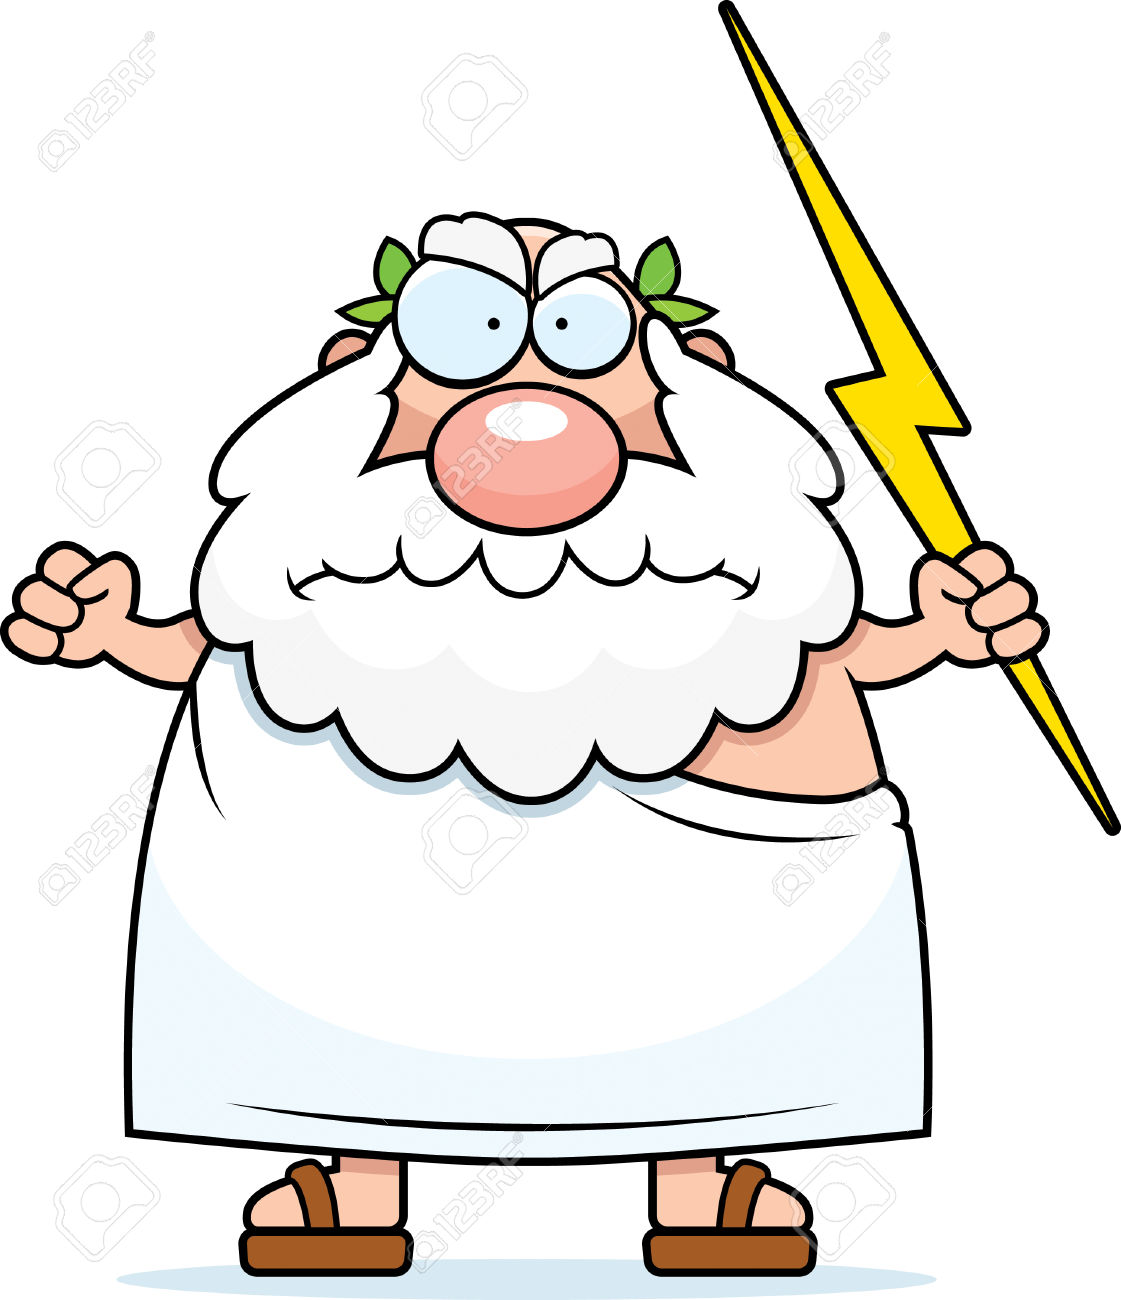 A Cartoon Greek God With An Angry Expression. Royalty Free.